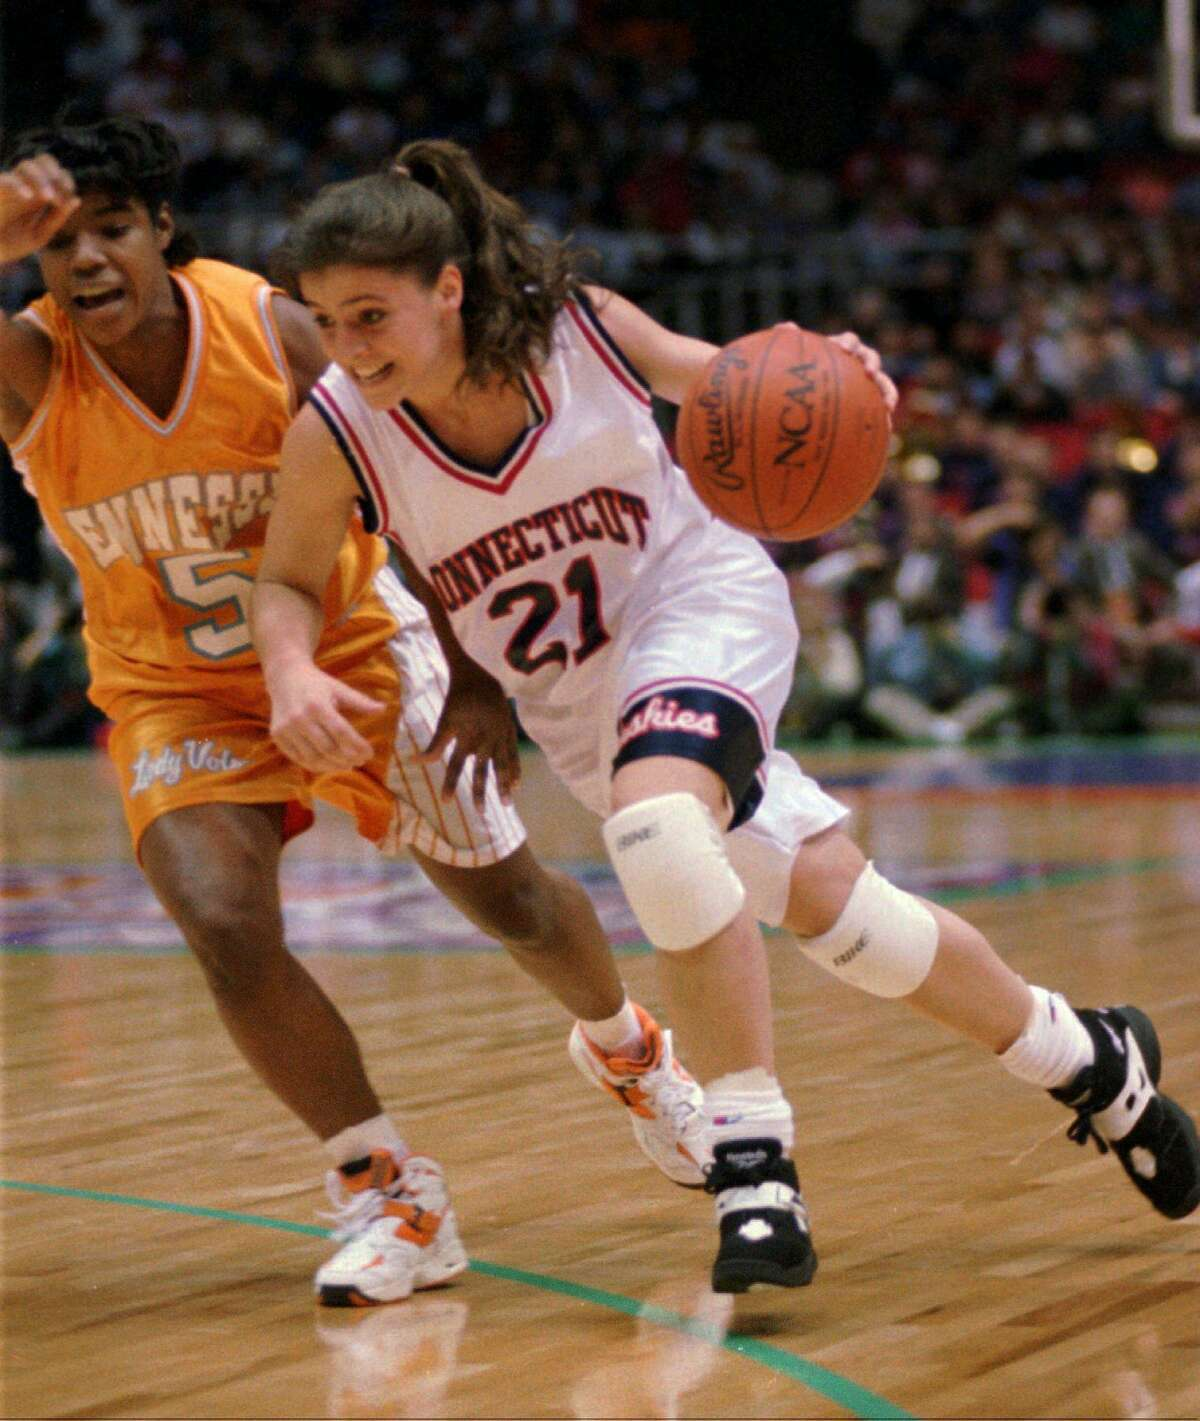 Jennifer Rizzotti- New Fairfield High School Rizzotti helped UConn win its first national championship in 1995, and is currently the head coach at George Washington University.